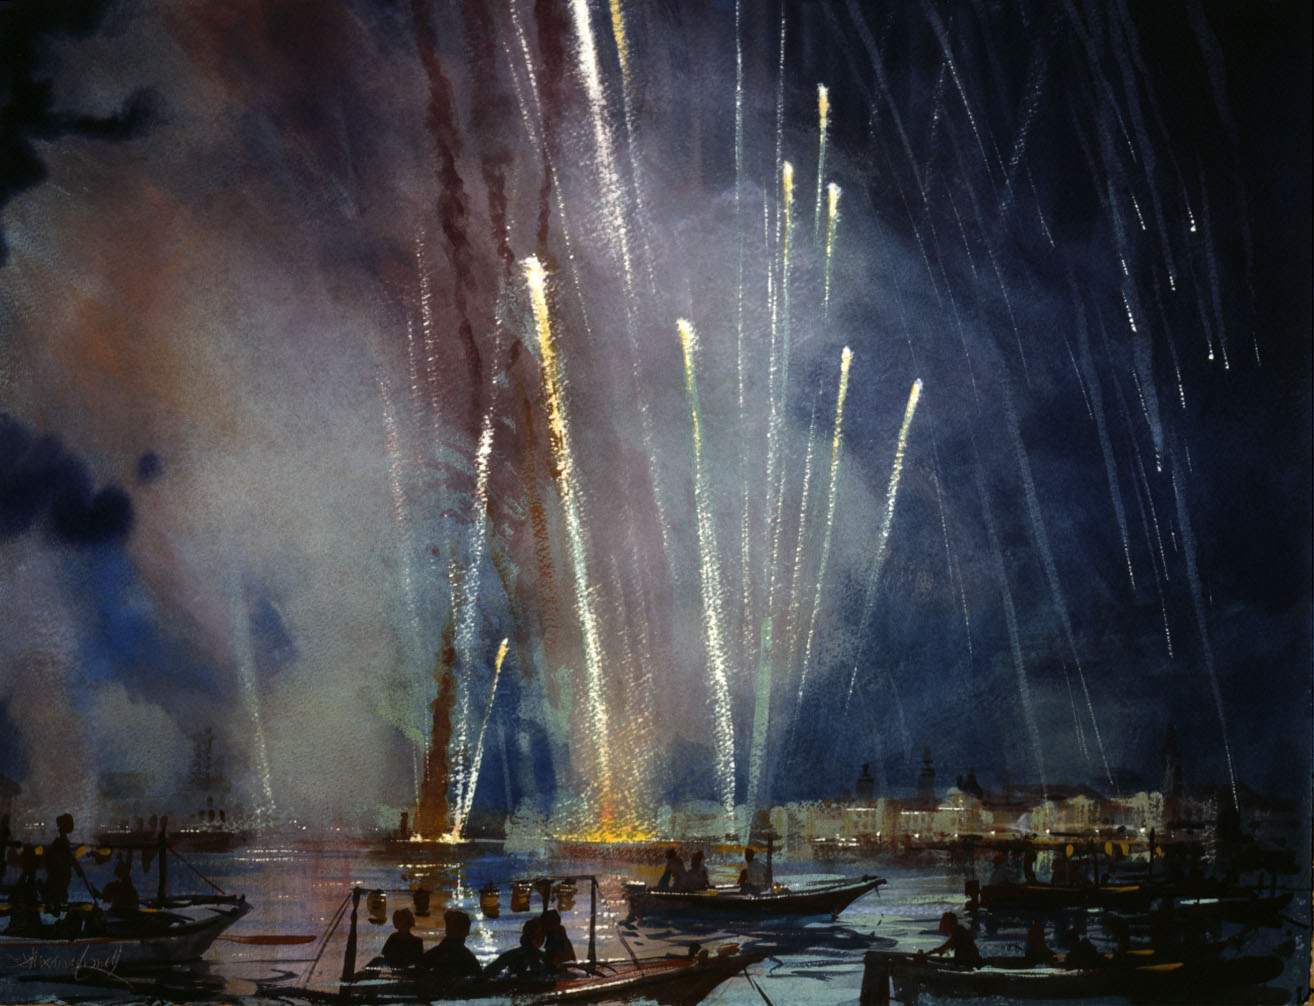 ac-13996d-194-venice-redentorefireworks-soundstudy6-2011-watercoloronpaper-22x30in